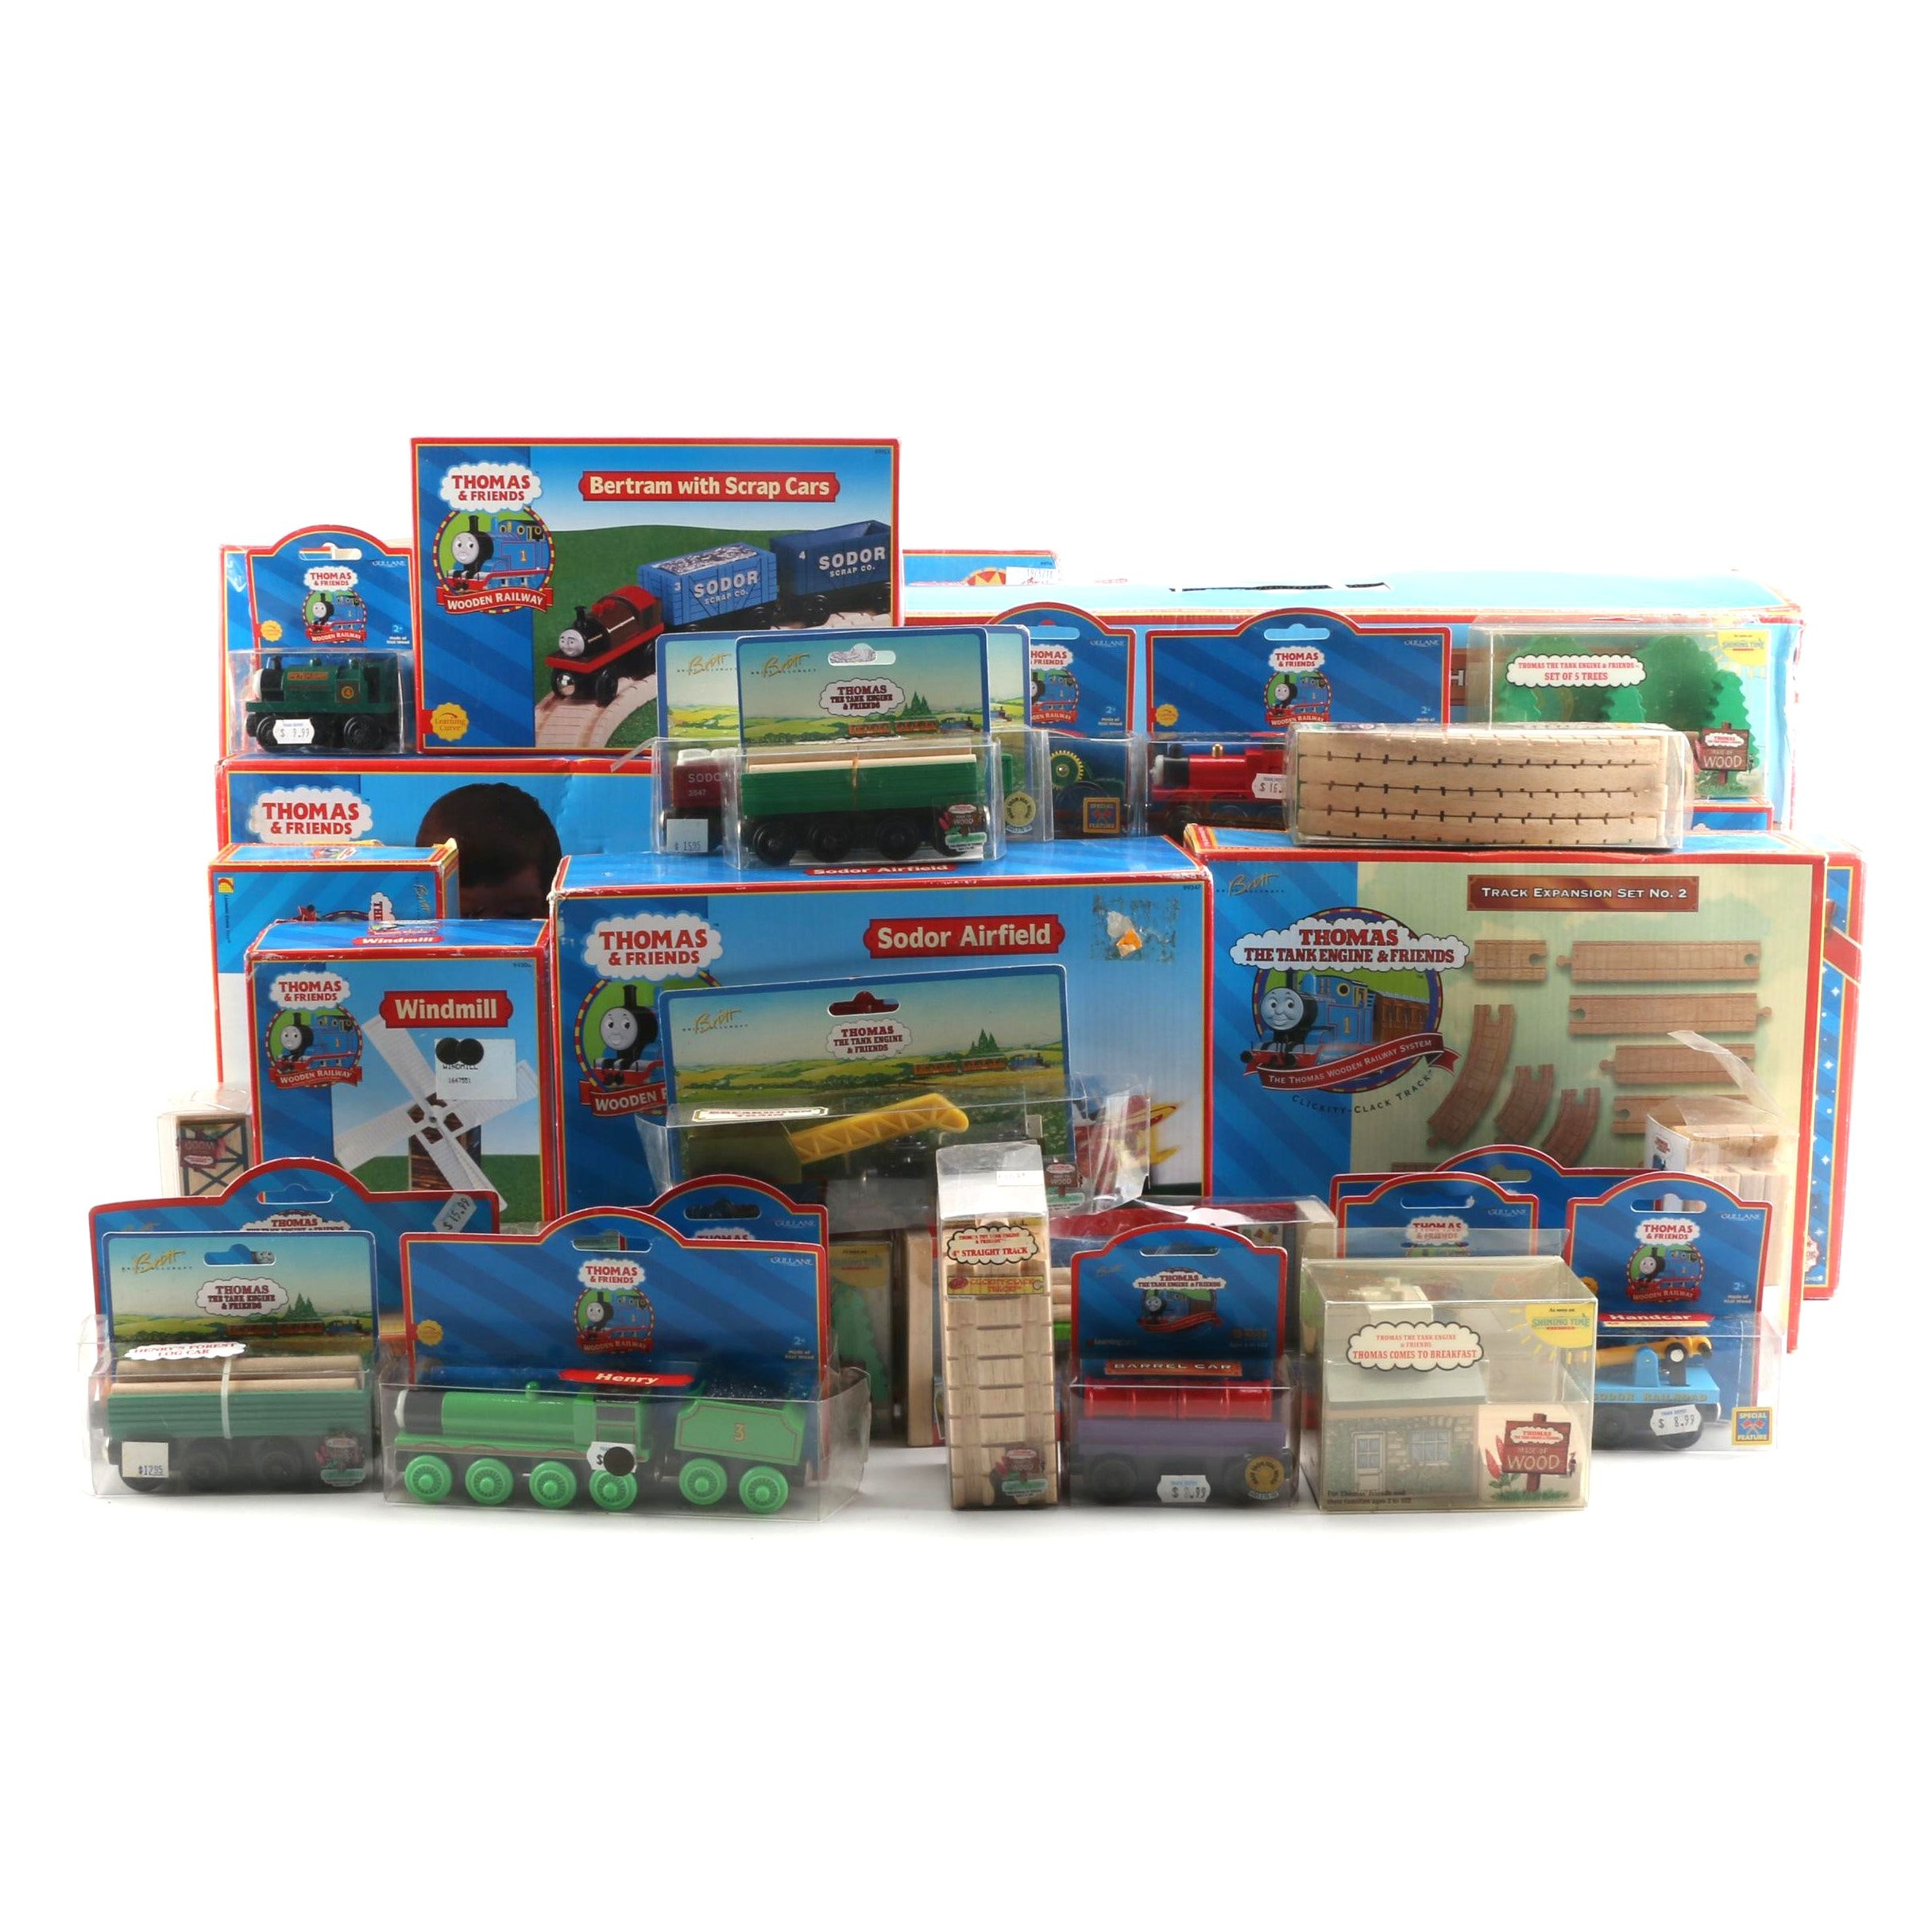 Thomas the Tank Engine & Friends Sets